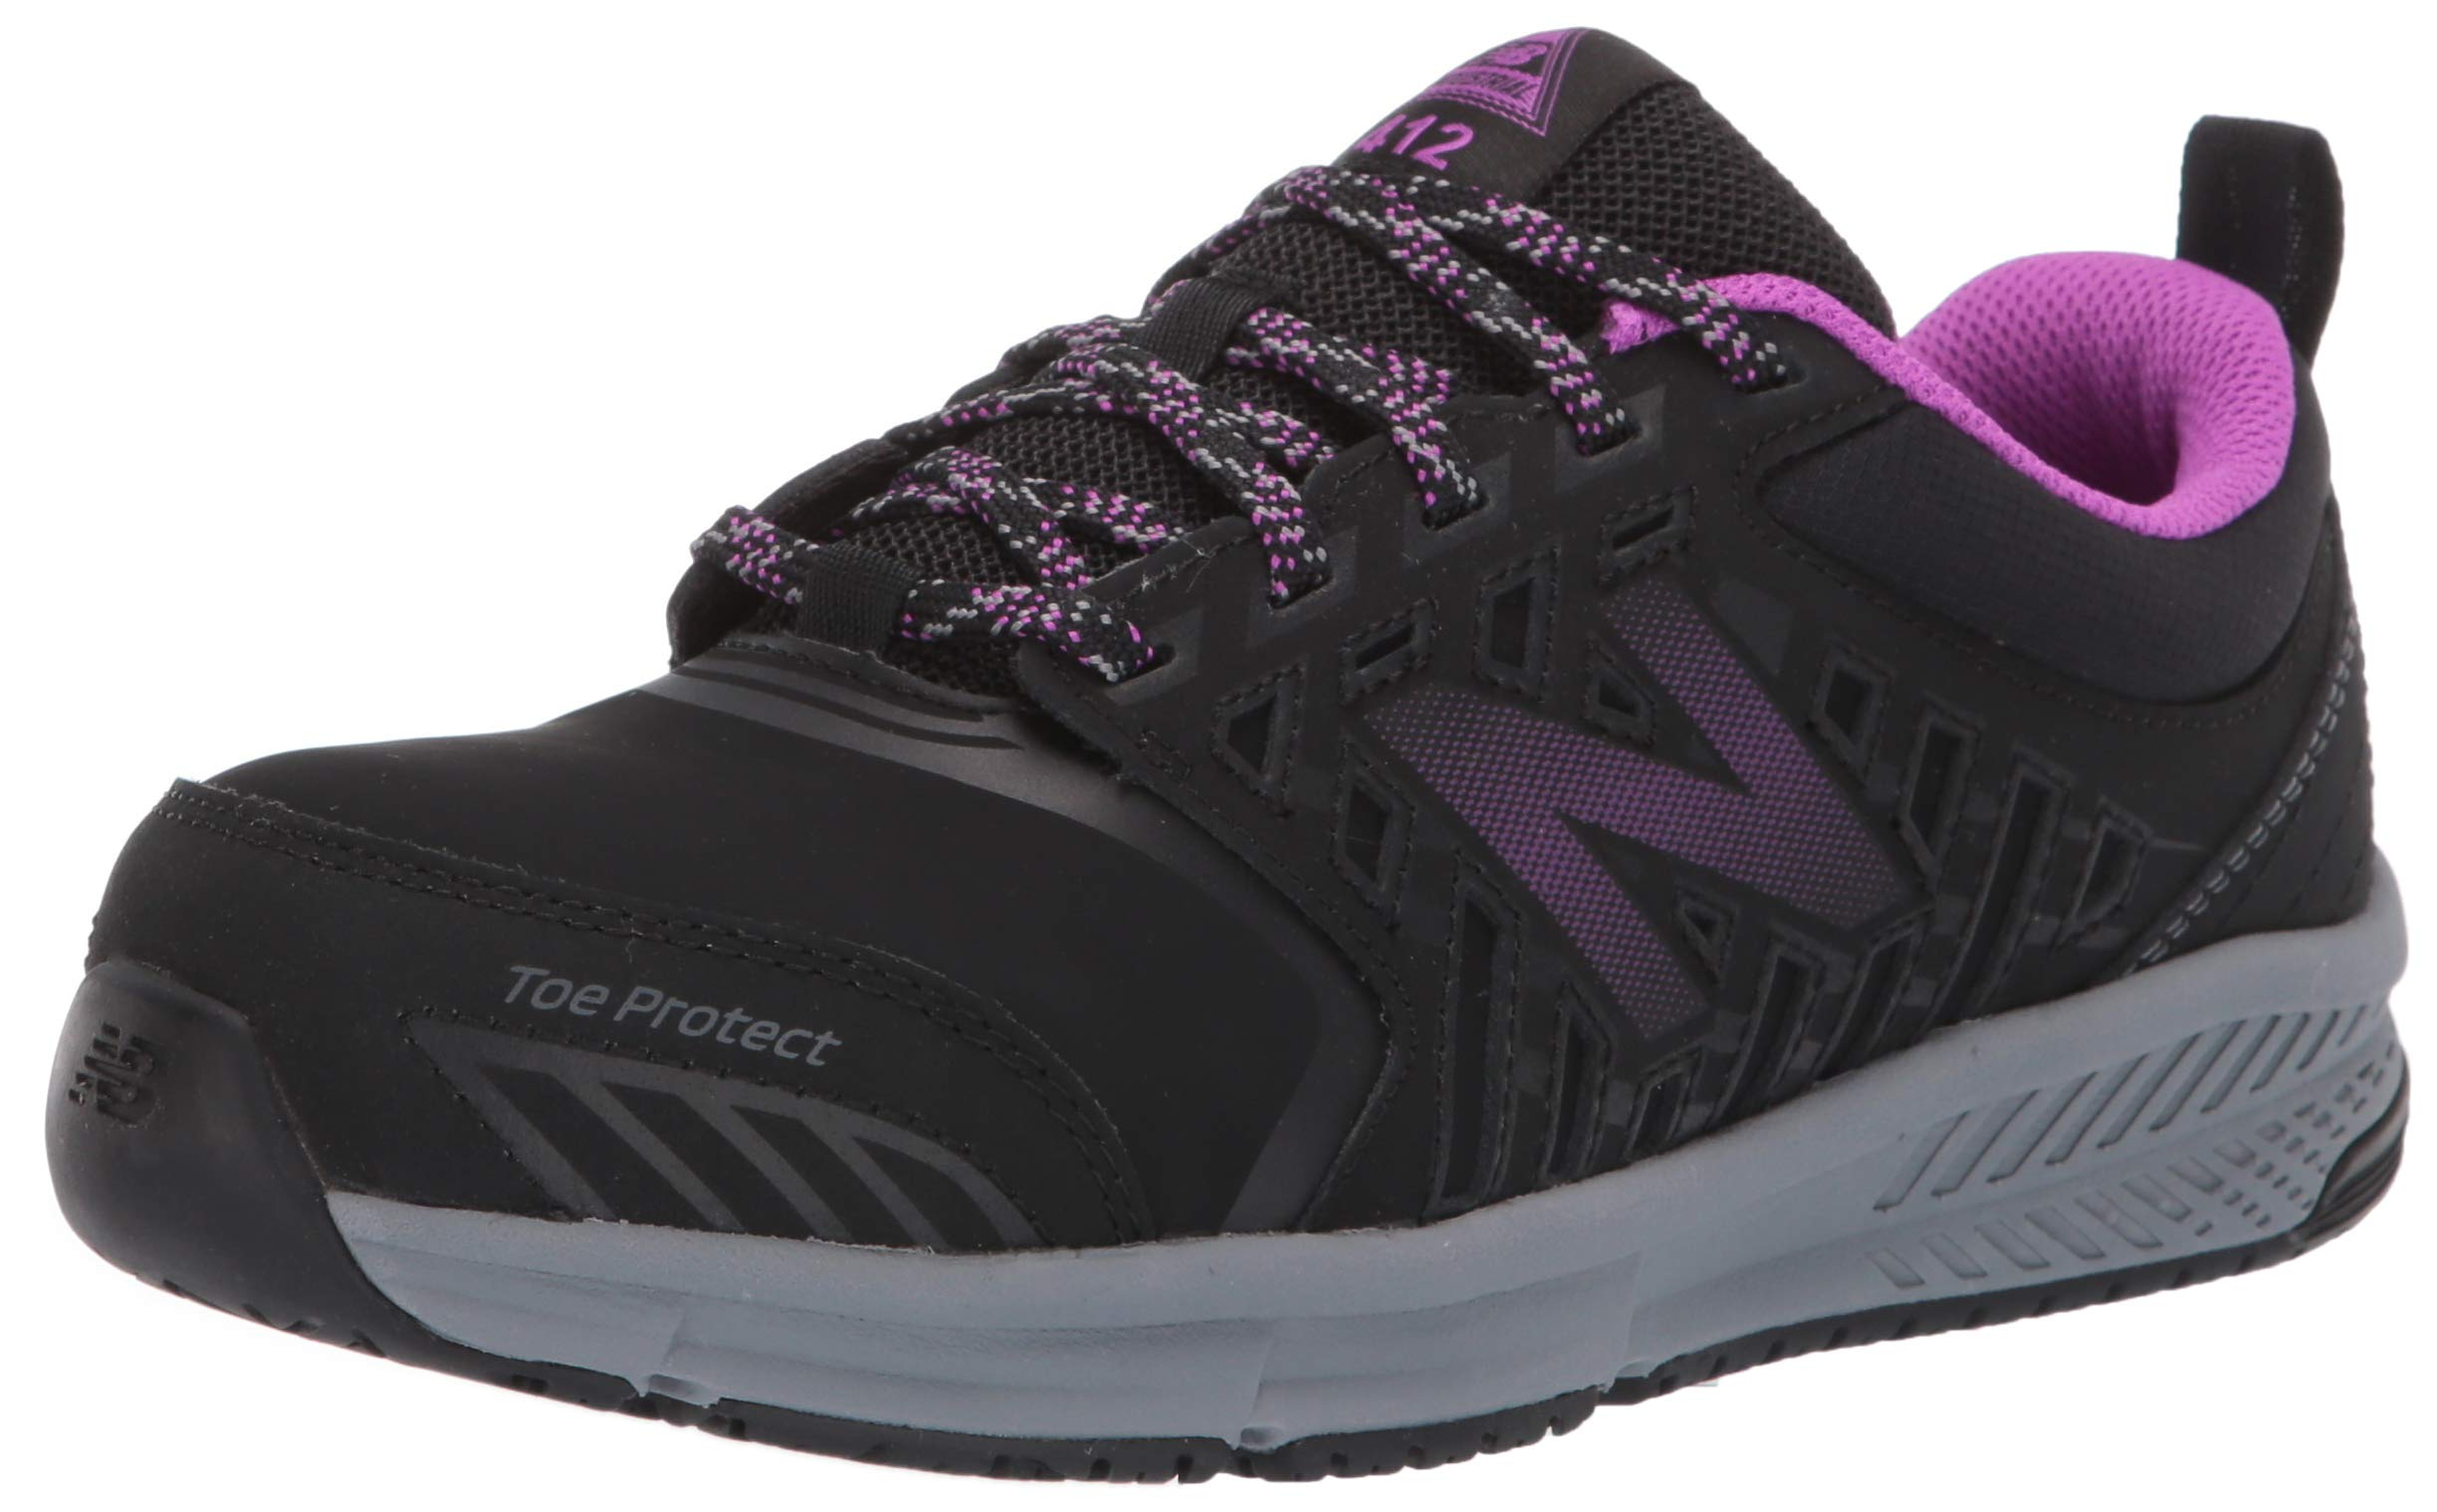 New Balance Women's 412v1 Work Industrial Shoe, Black/Purple, 9 D US by New Balance